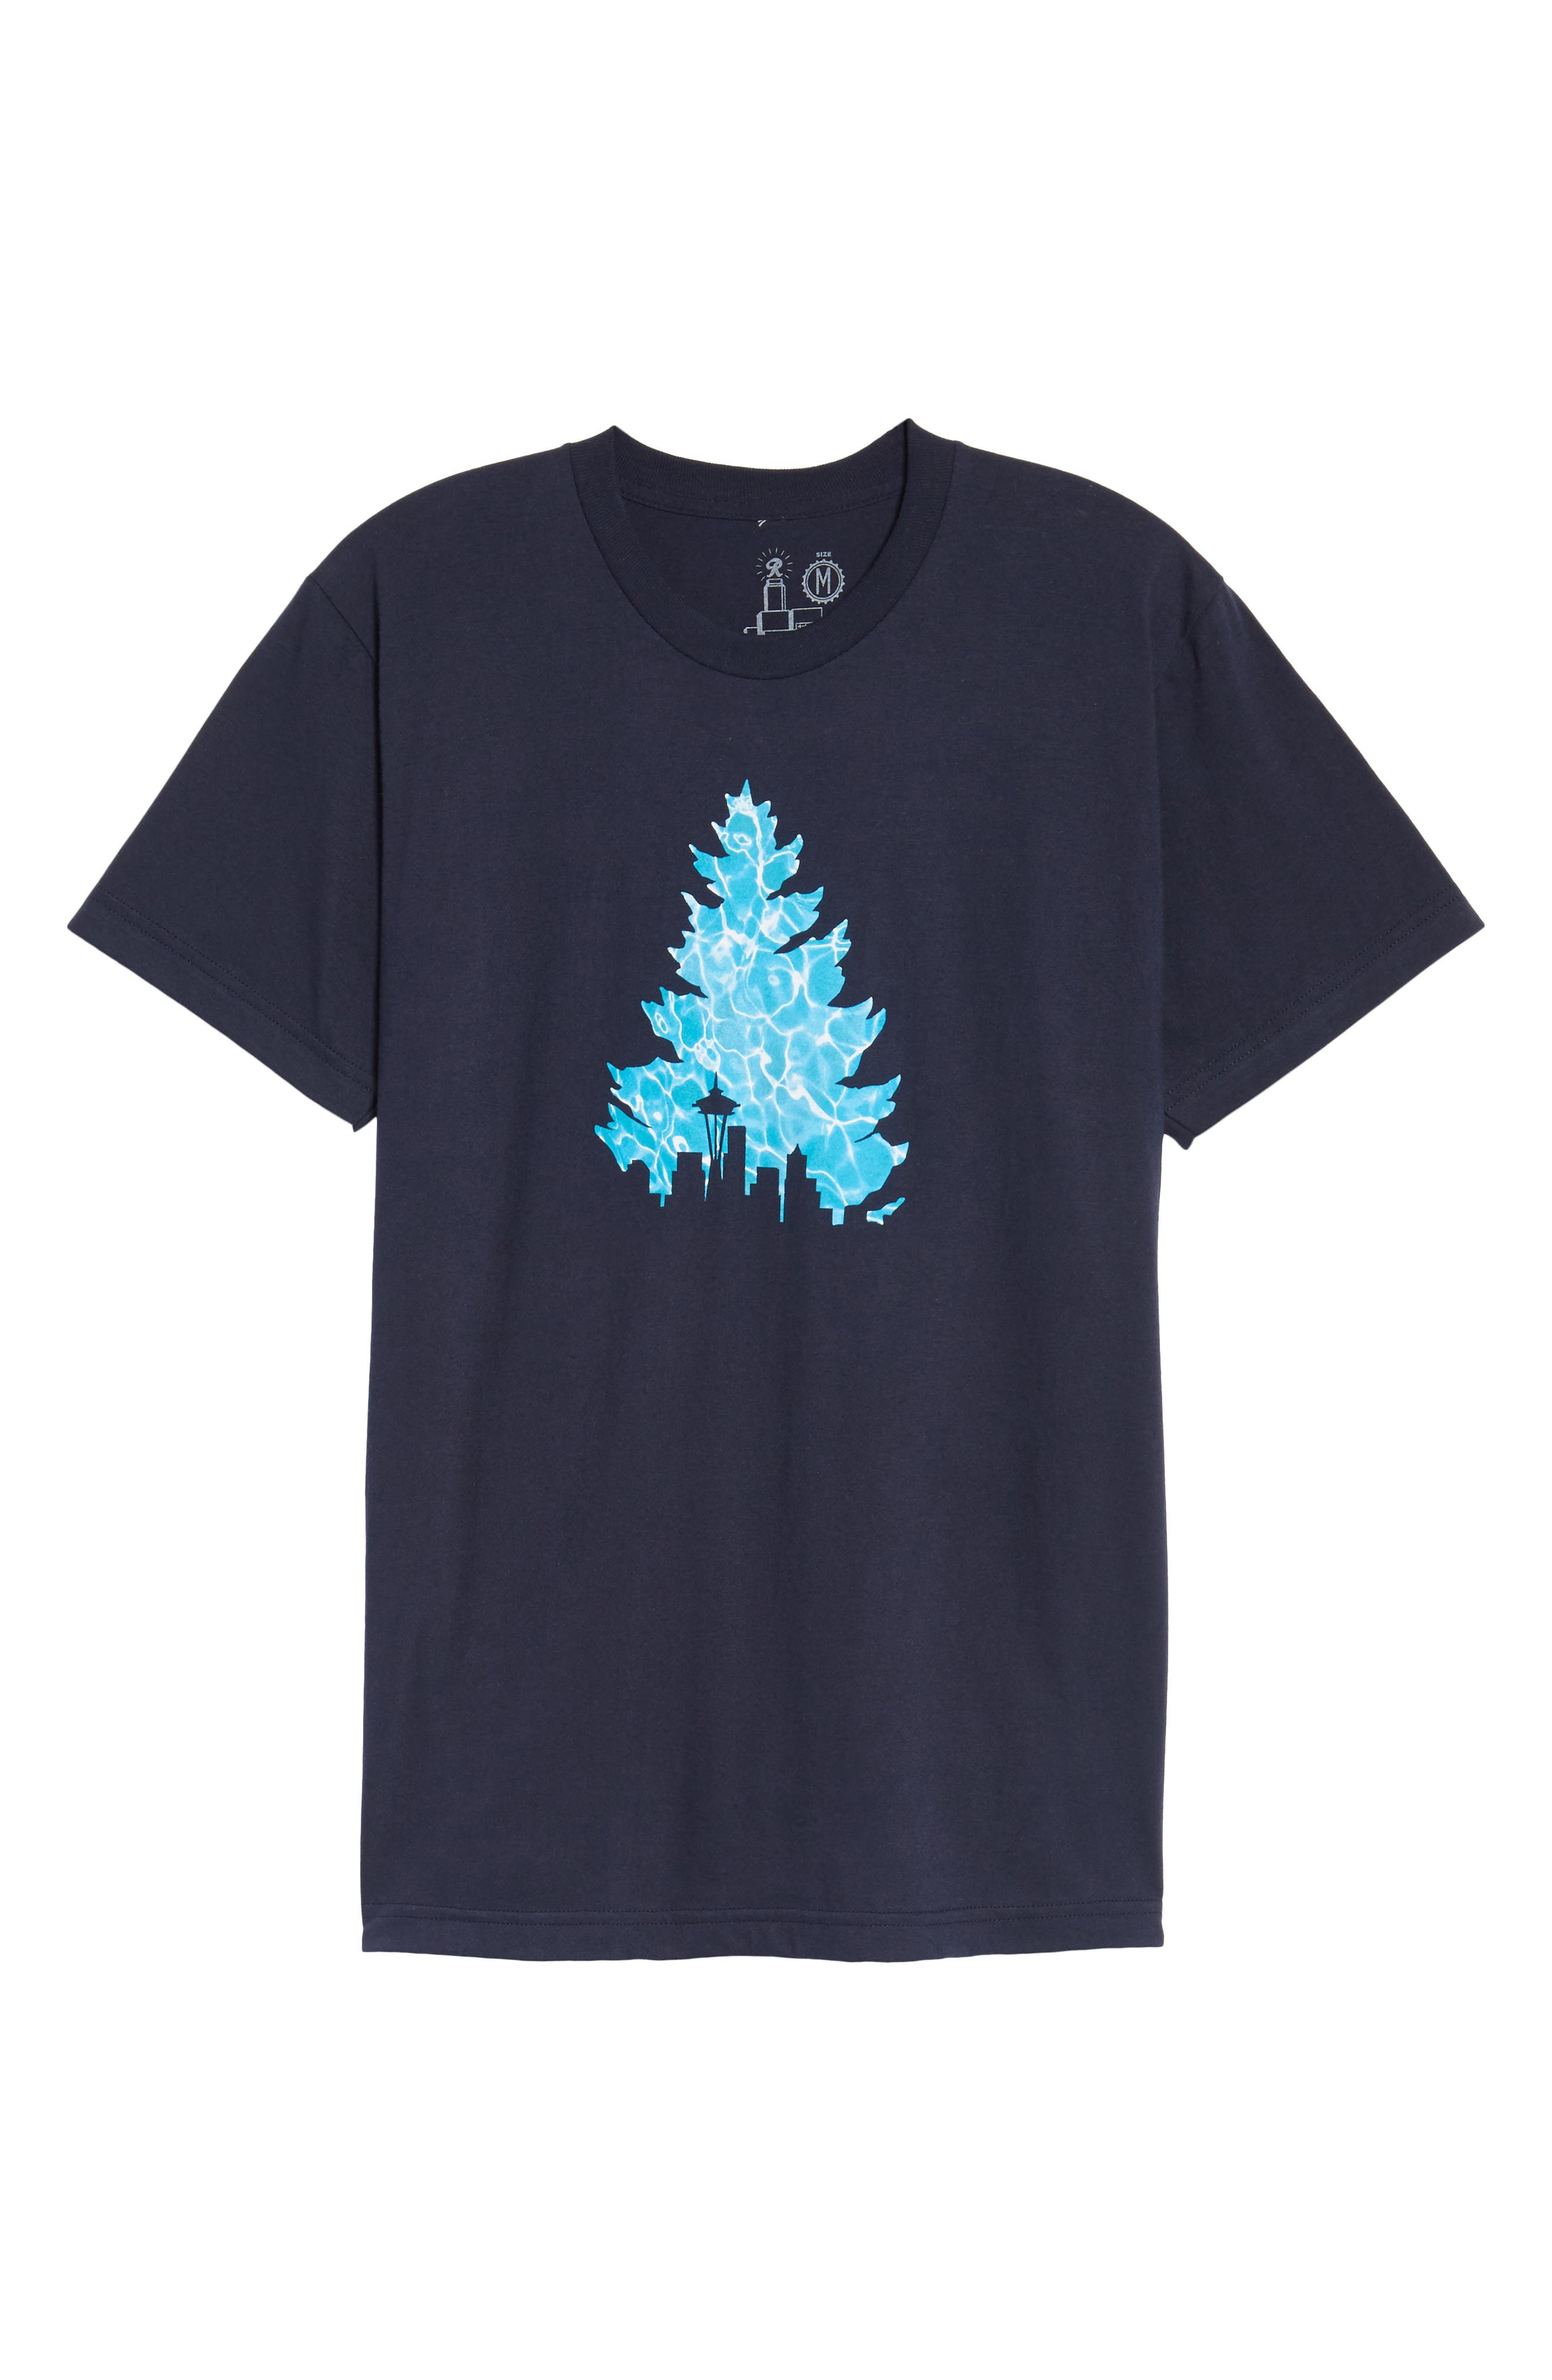 Johnny Tree Pool Graphic T-Shirt,                             Alternate thumbnail 6, color,                             Navy